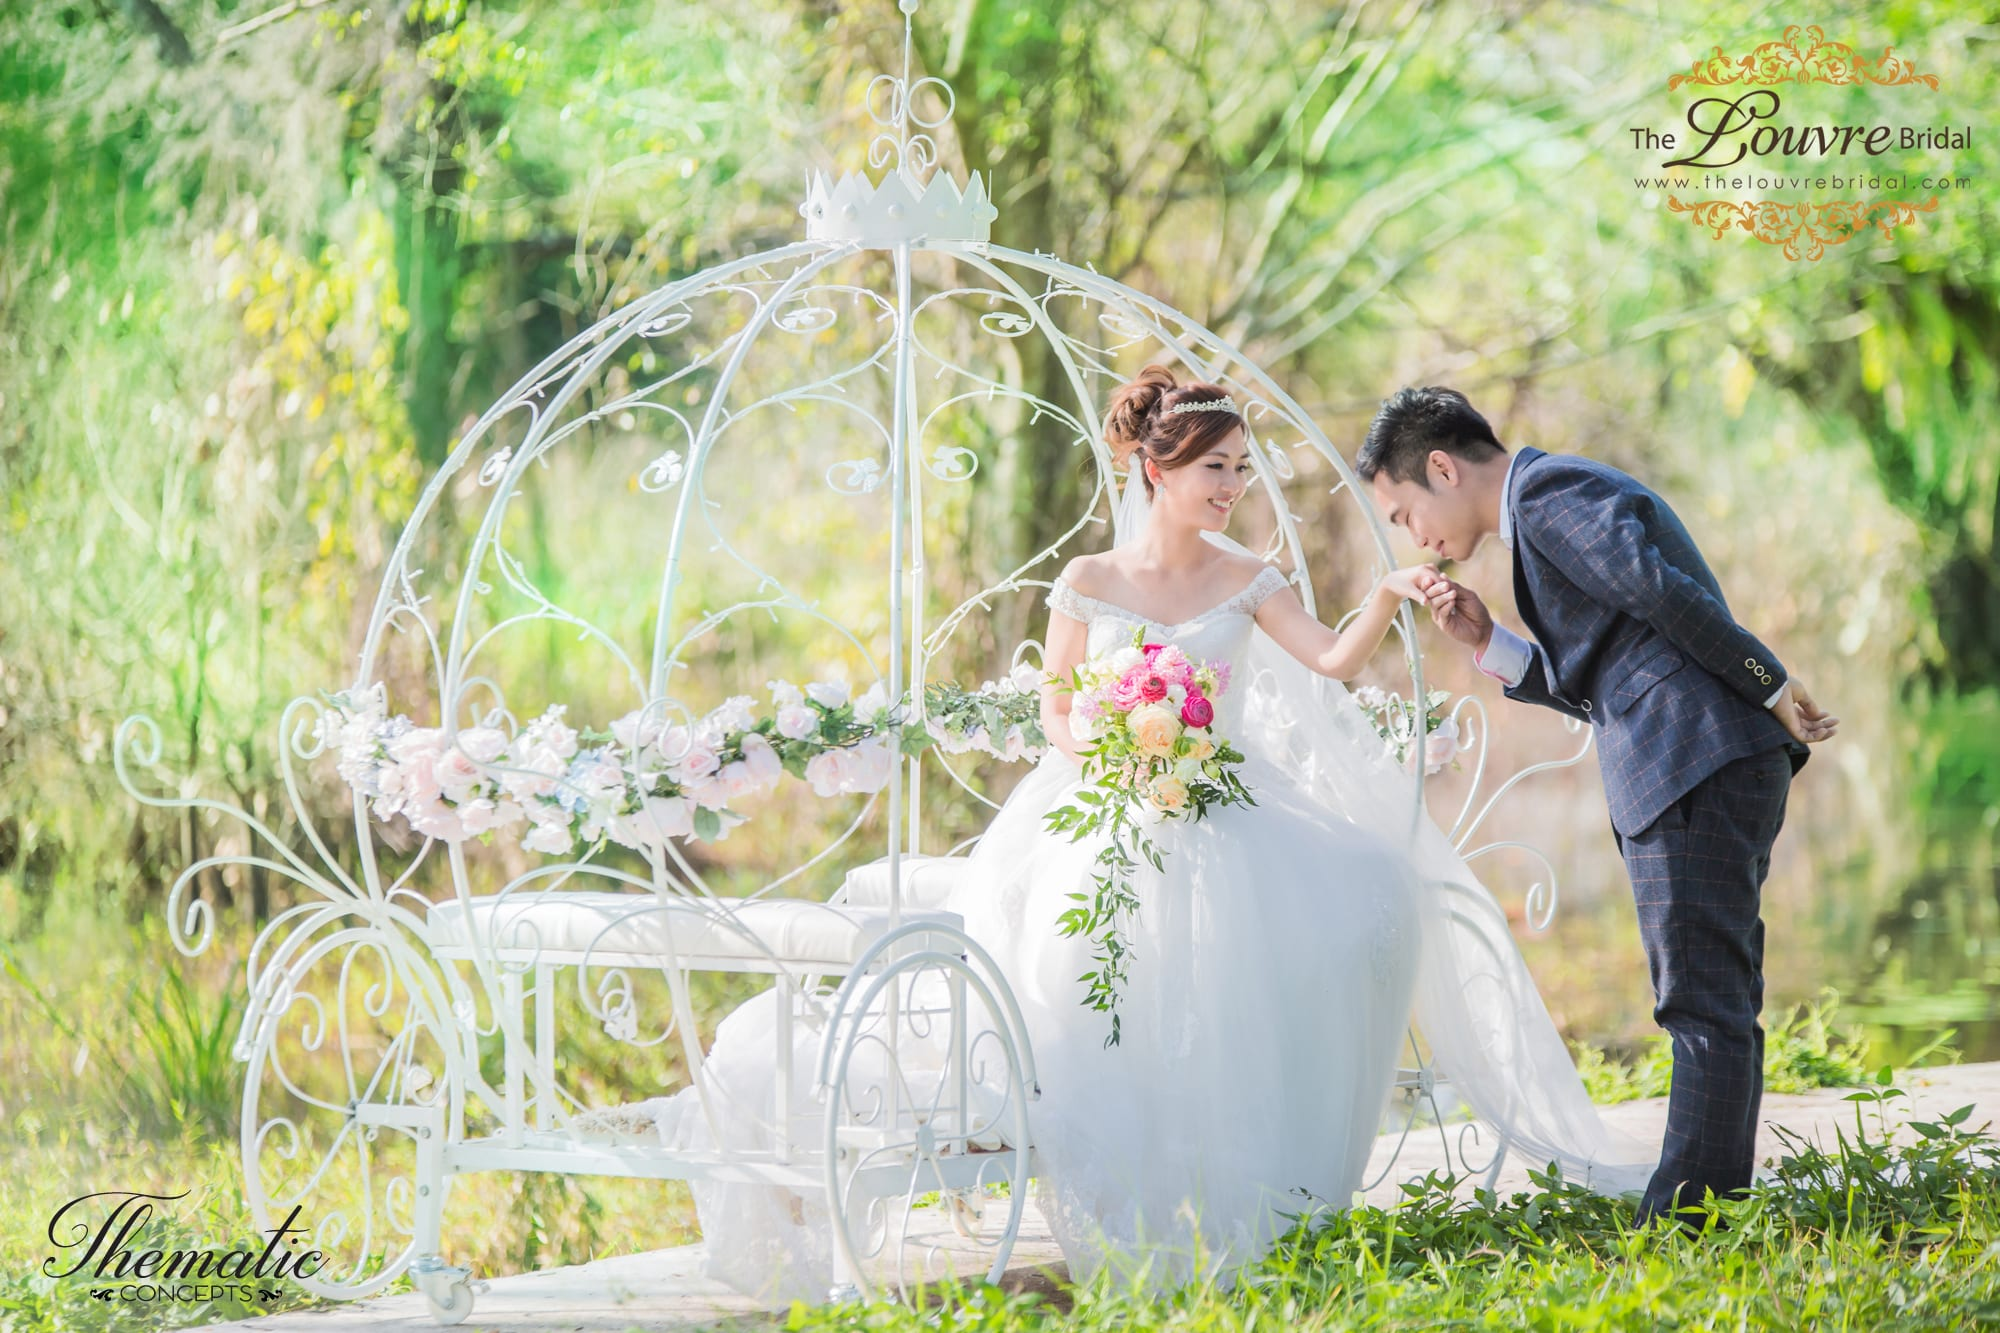 fairytale wedding theme shoot 21st styled storybook